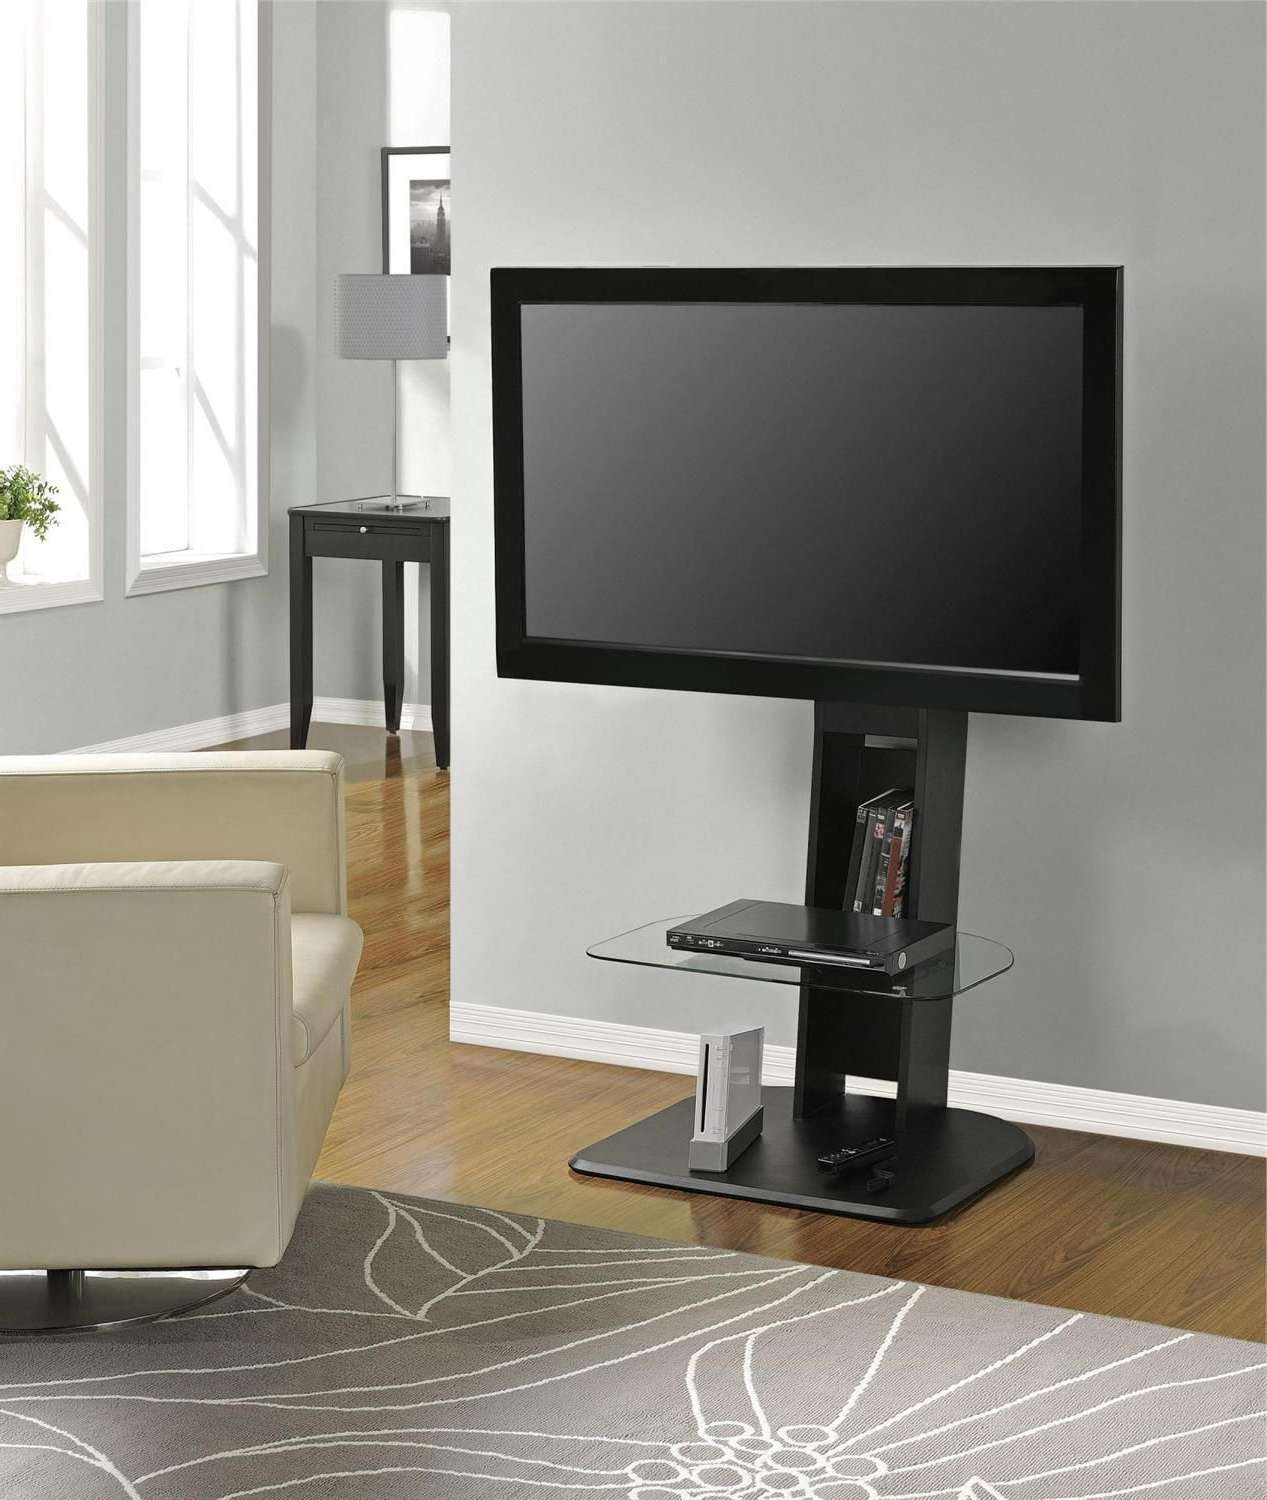 Dorel Home Galaxy Tv Stand With Mount | Walmart Canada Intended For Tv Stands With Mount (View 15 of 15)